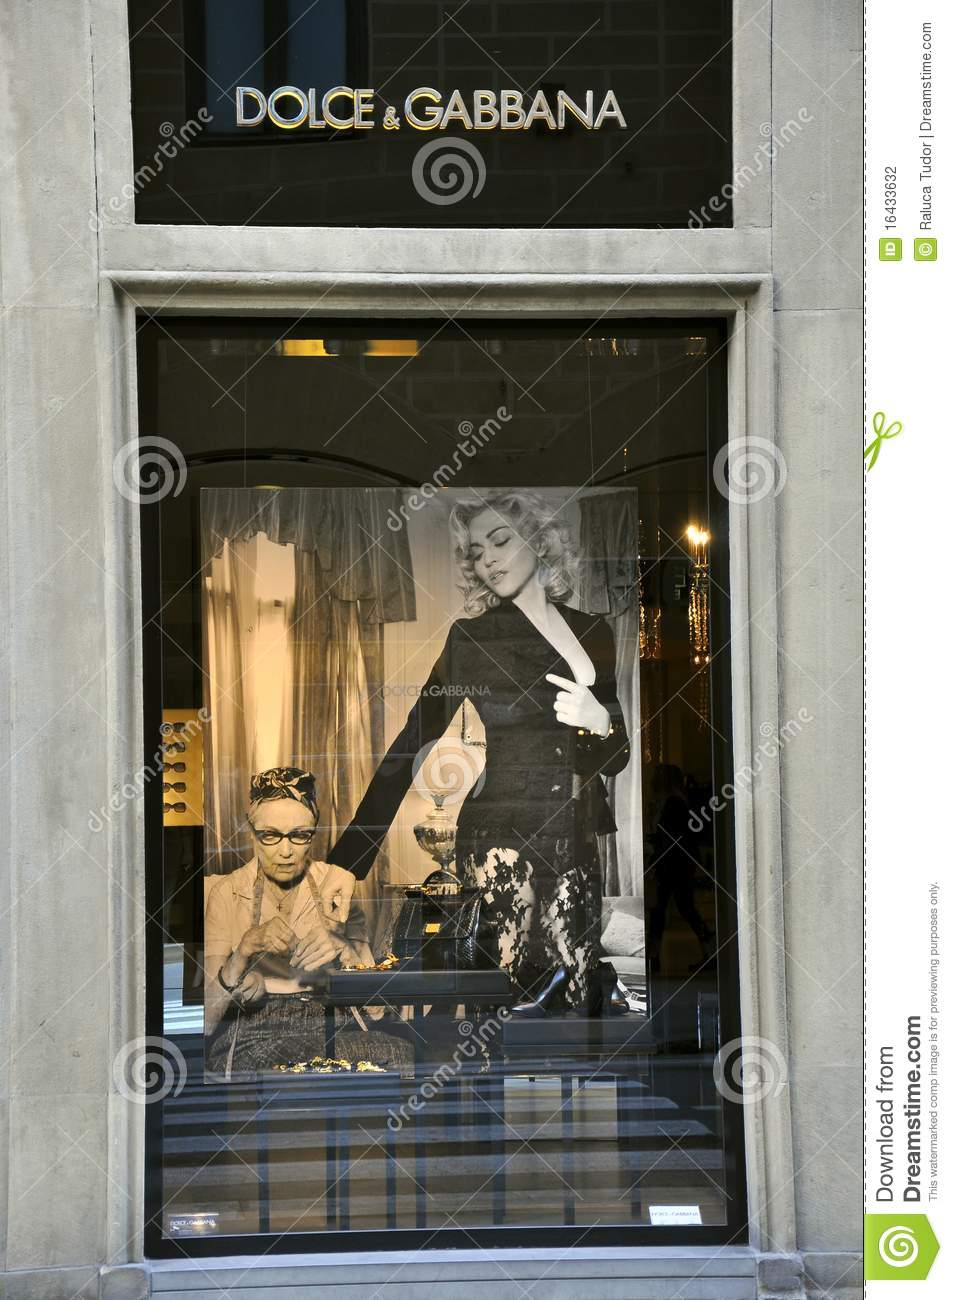 dolce and gabbana luxury fashion store editorial. Black Bedroom Furniture Sets. Home Design Ideas